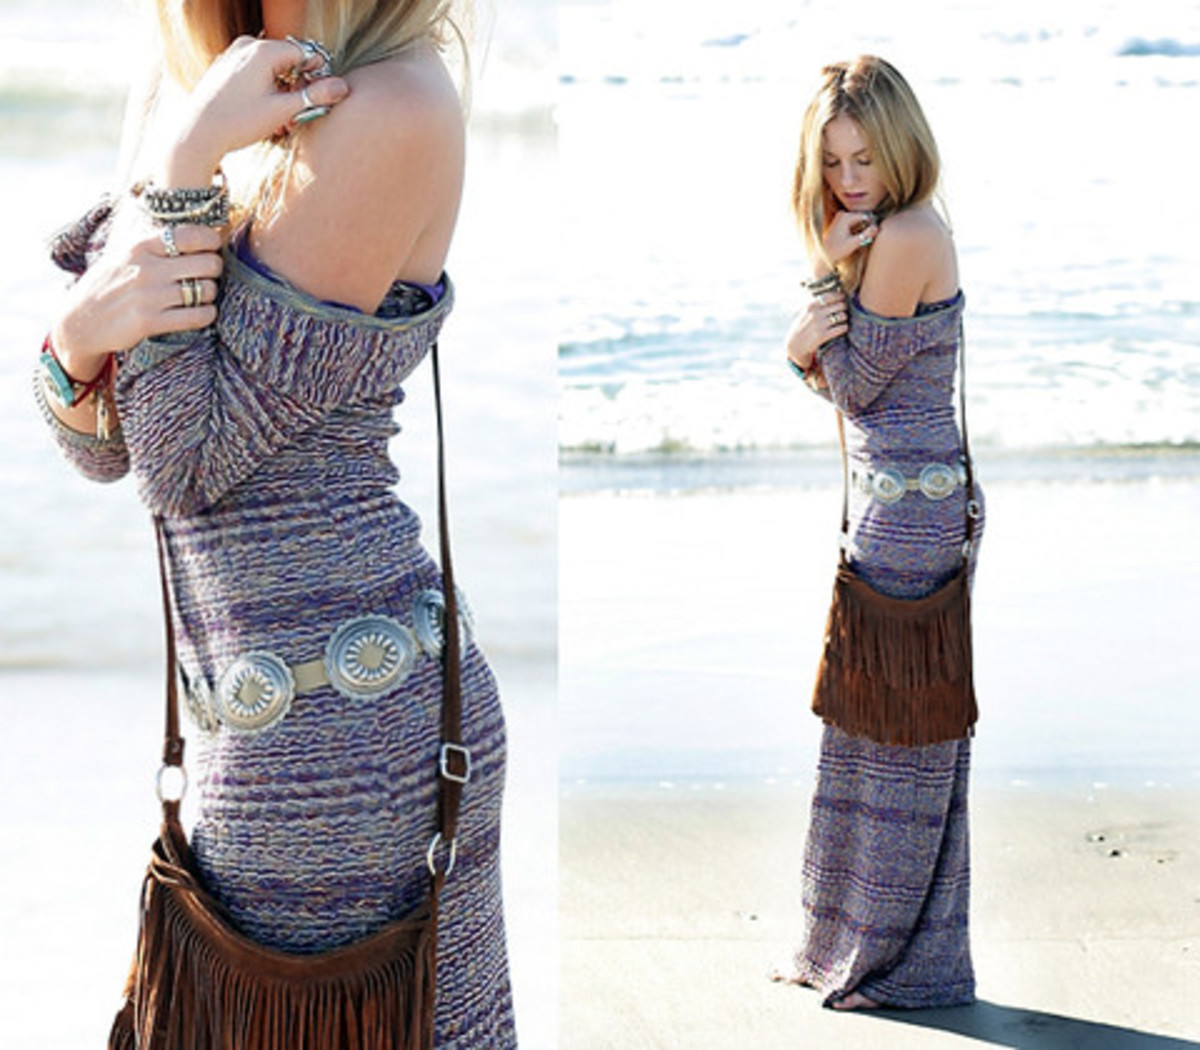 #10 concho belt with sun dress and suede purse with fringe